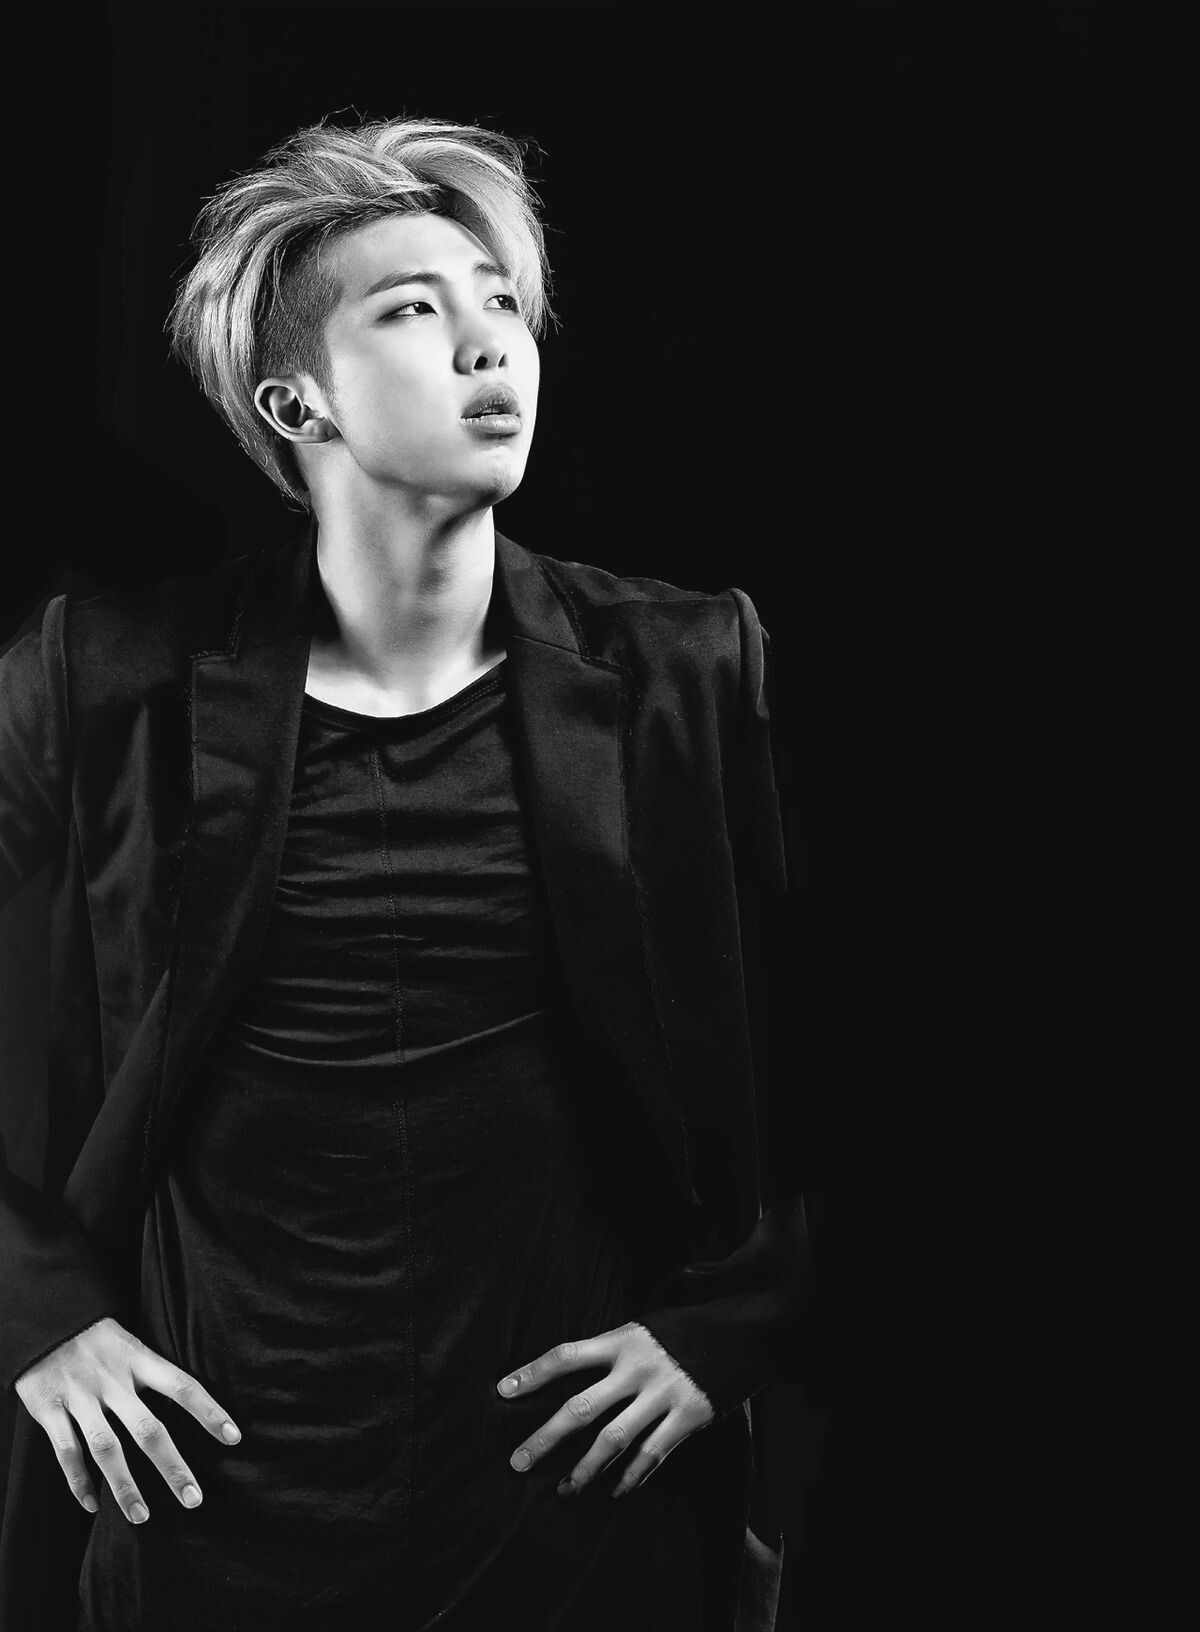 Bts Rap Monster Images Kim Nam Joon 3 Hd Wallpaper And Background